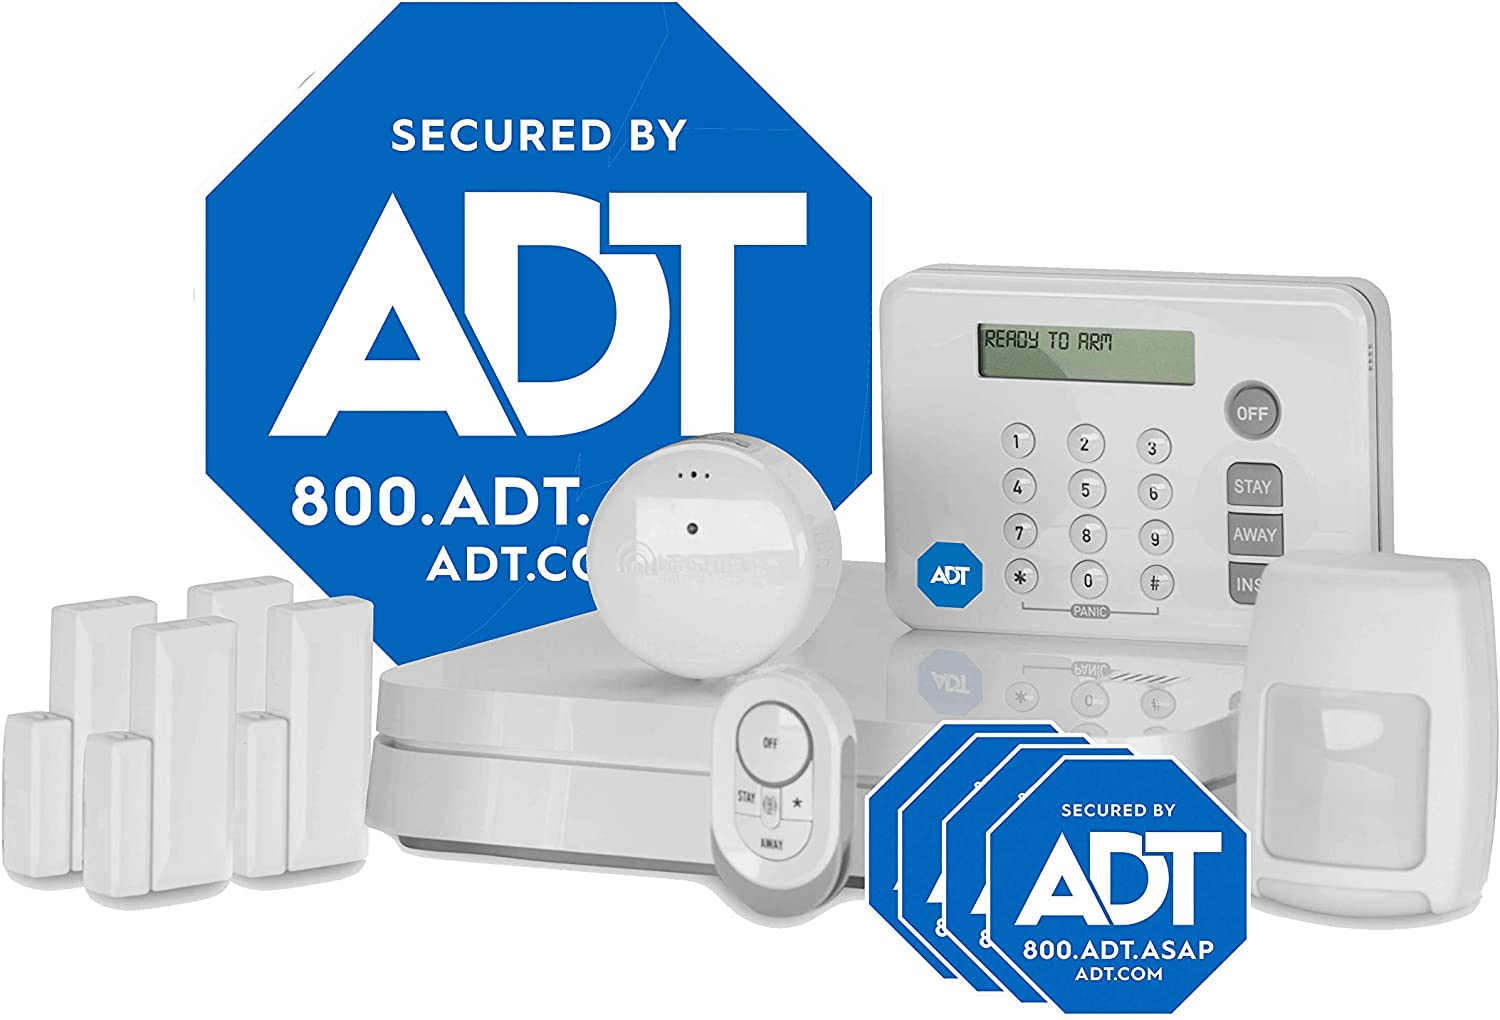 Adt Home Security Systems >> Adt Trouble Light Blinking Pogot Bietthunghiduong Co